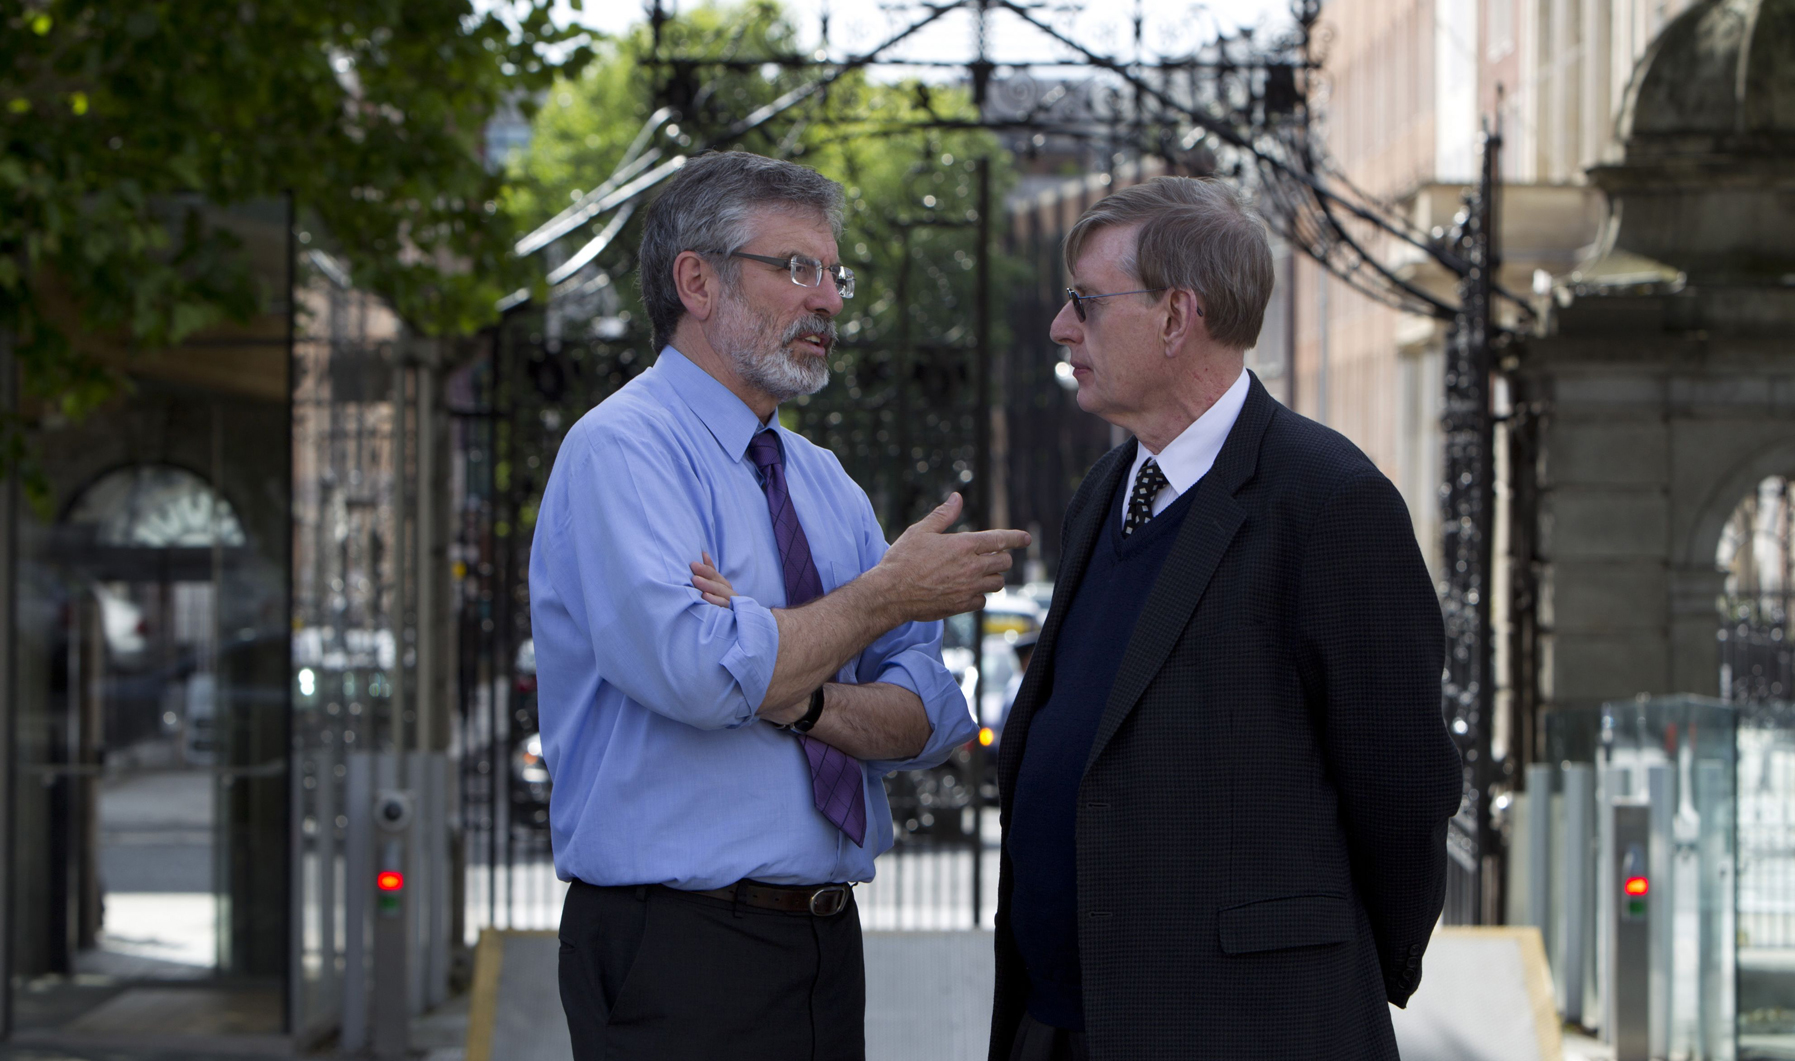 Ross with Gerry Adams, President of Sinn Féin.